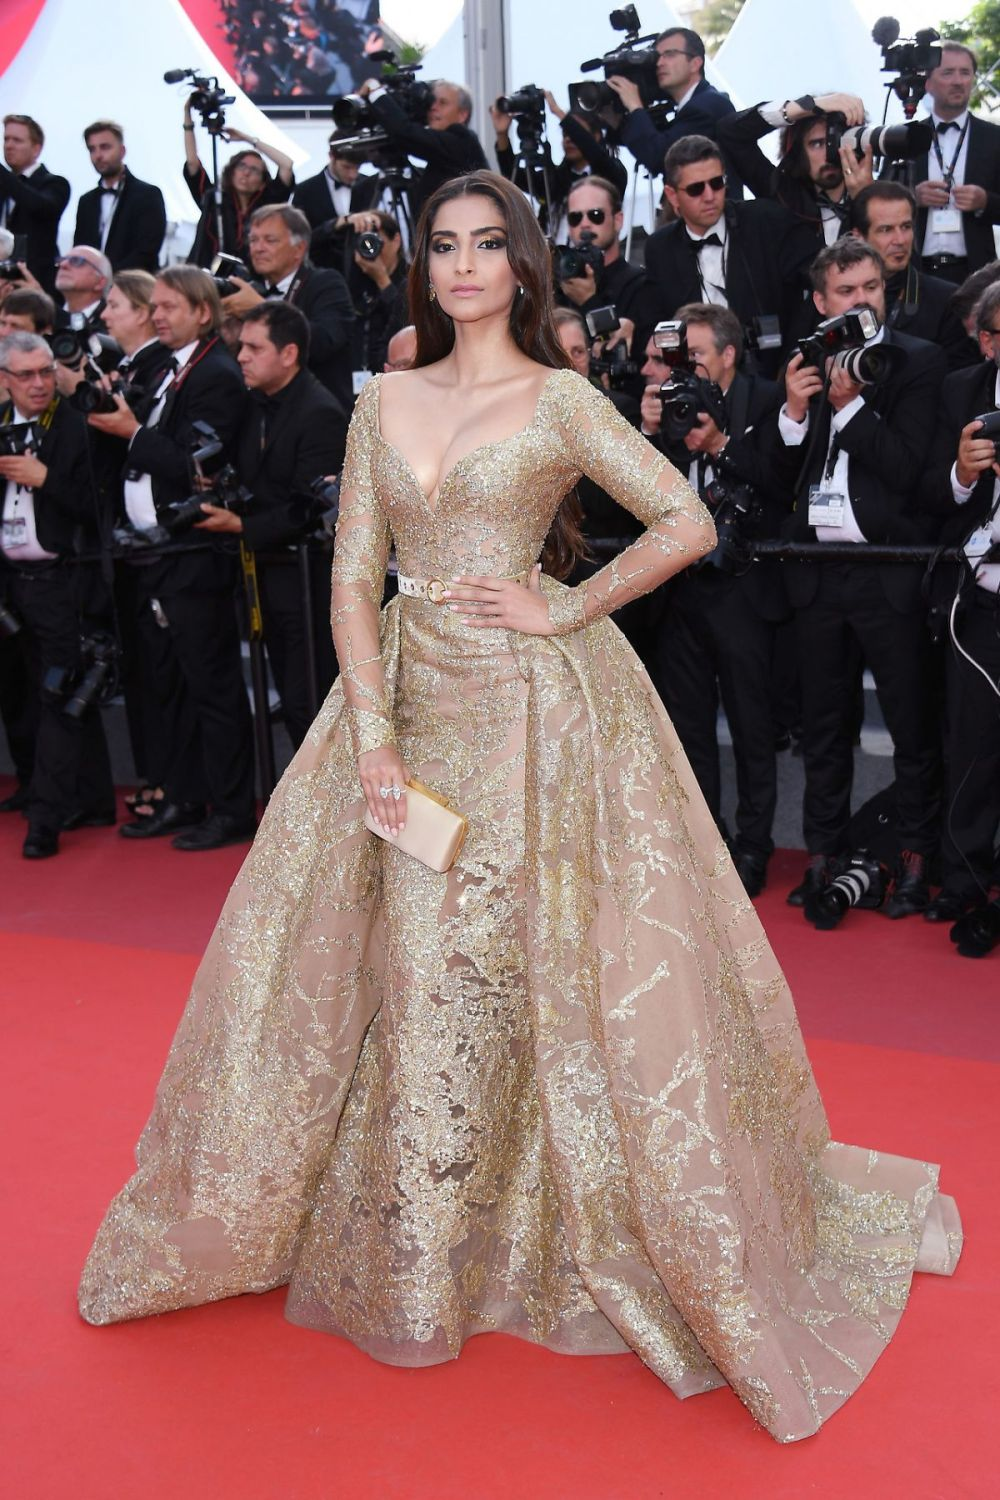 sonam-kapoor-at-the-killing-of-a-sacred-deer-premiere-at-70th-annual-cannes-film-festival-05-22-2017_1